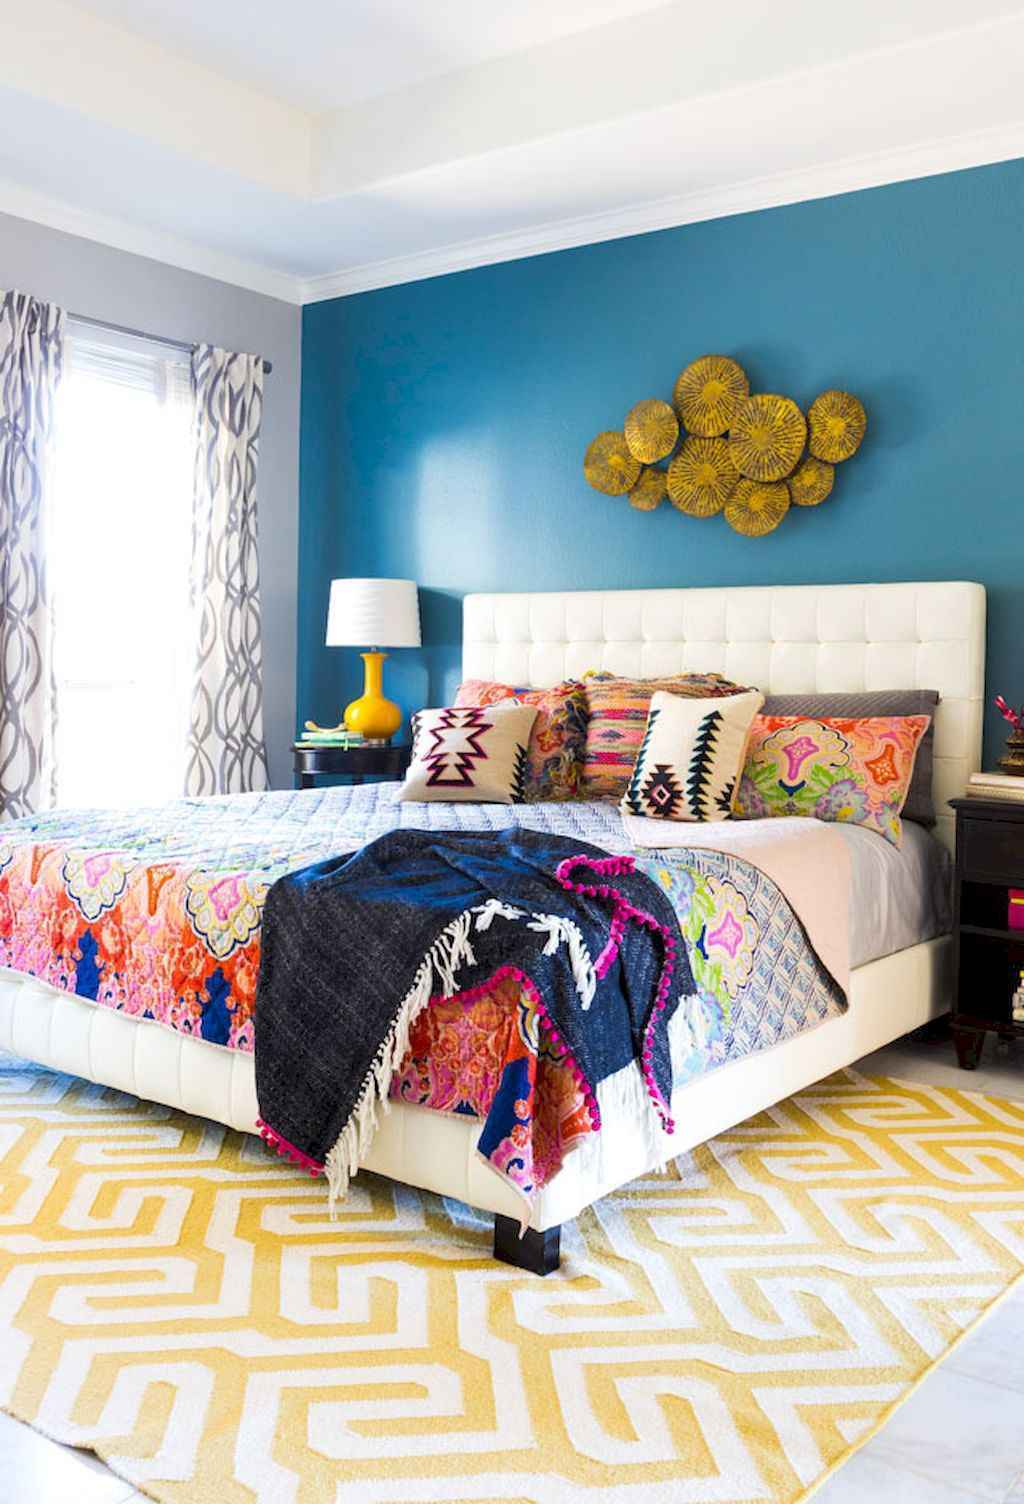 60 cool eclectic master bedroom decor ideas (57)